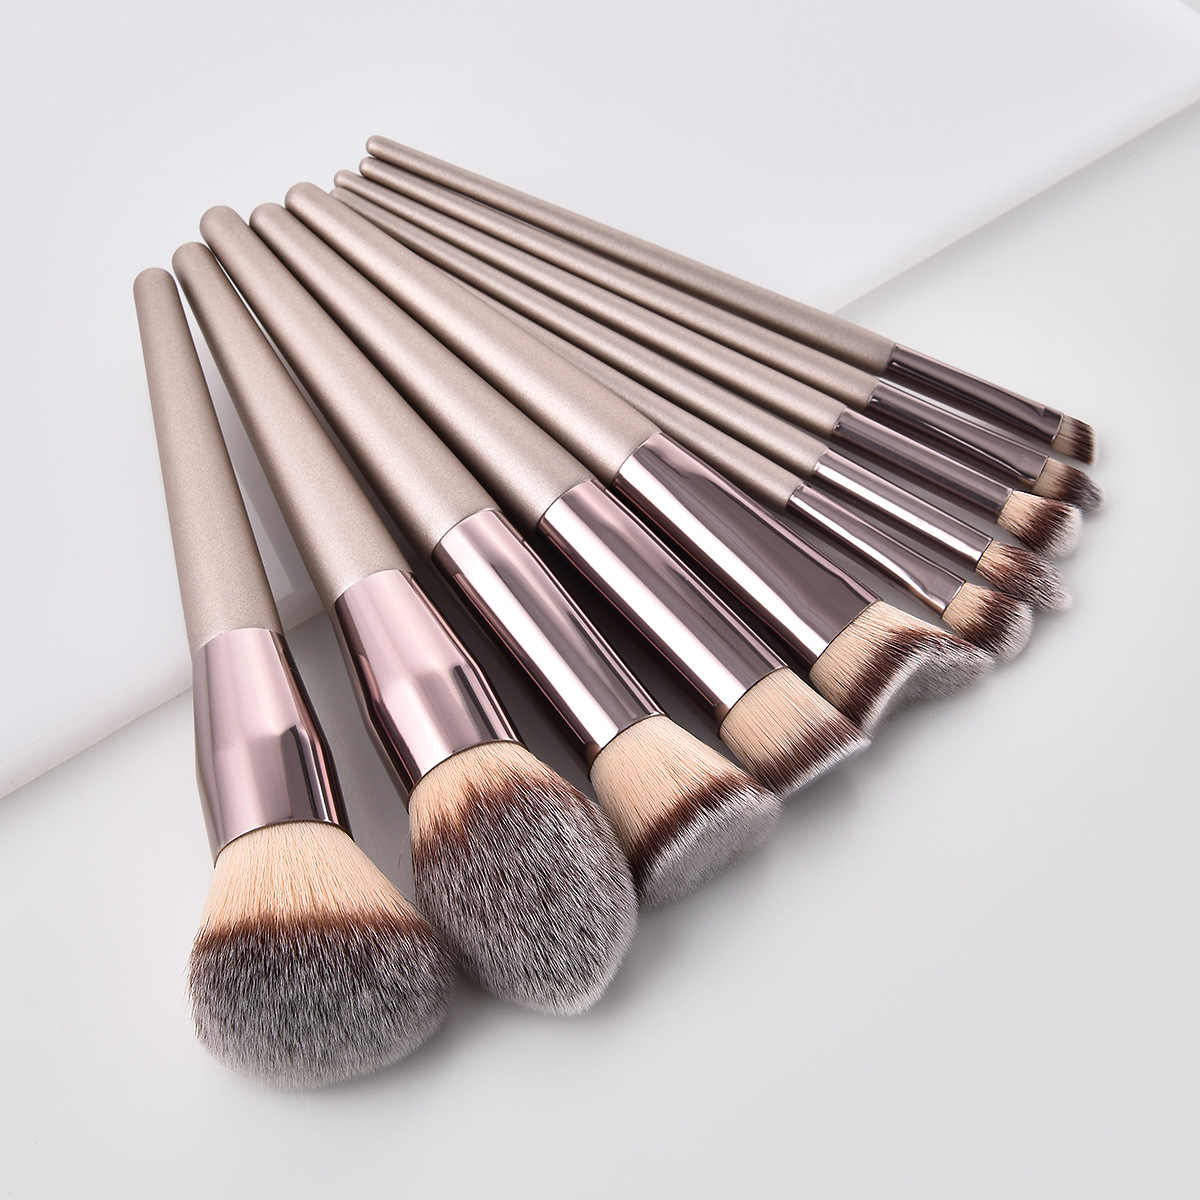 Luxe Champagne Make-Up Kwasten Foundation Poeder Blush Oogschaduw Wimper Concealer Lip Eye Blending Brush Make Up Kwasten Set